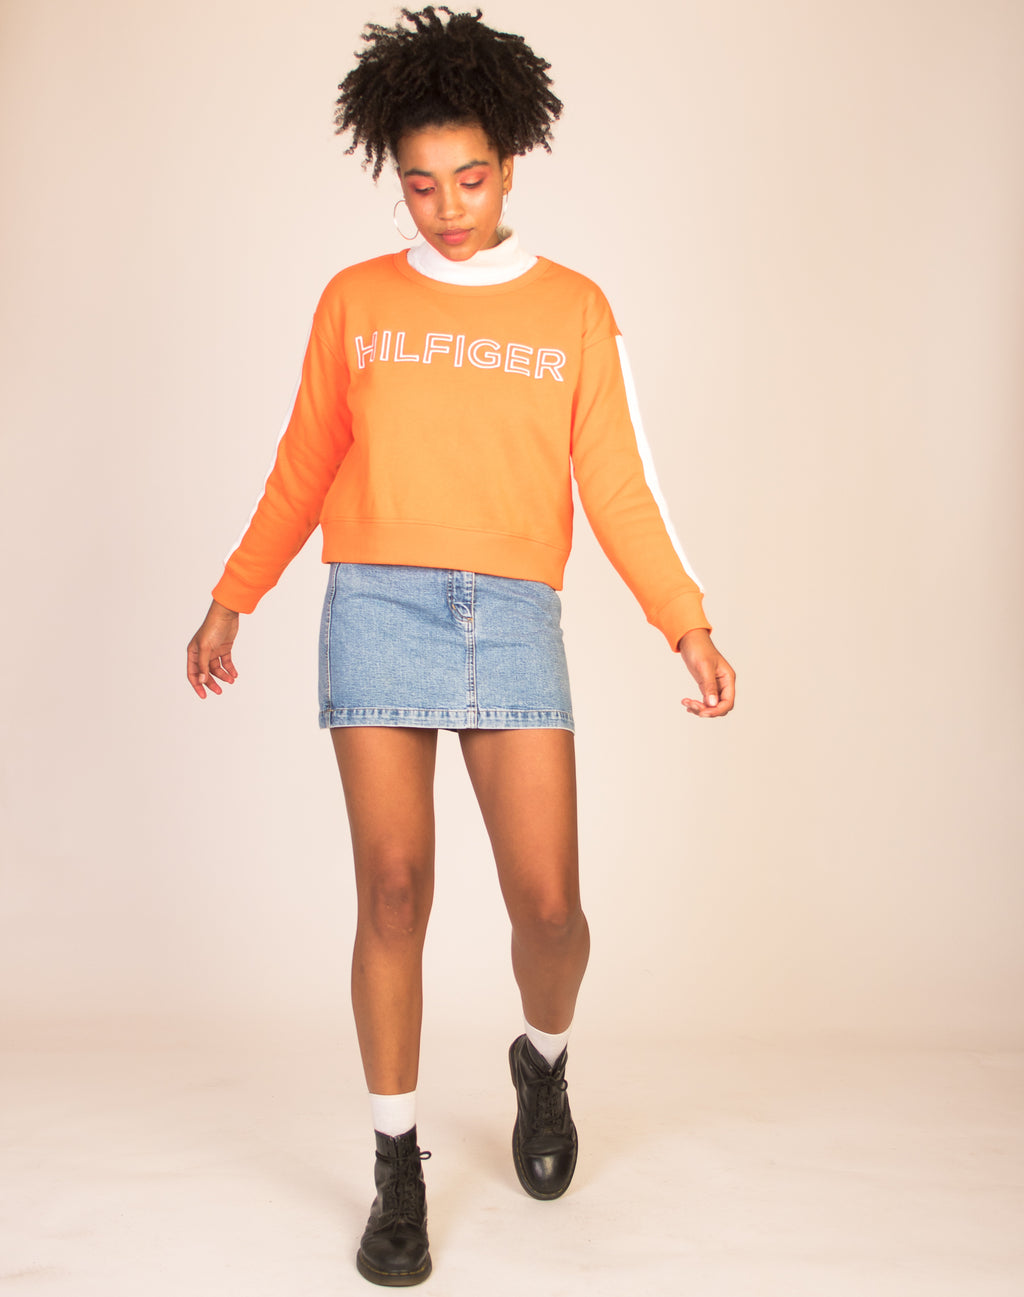 TOMMY HILFIGER NEON ORANGE SWEATSHIRT